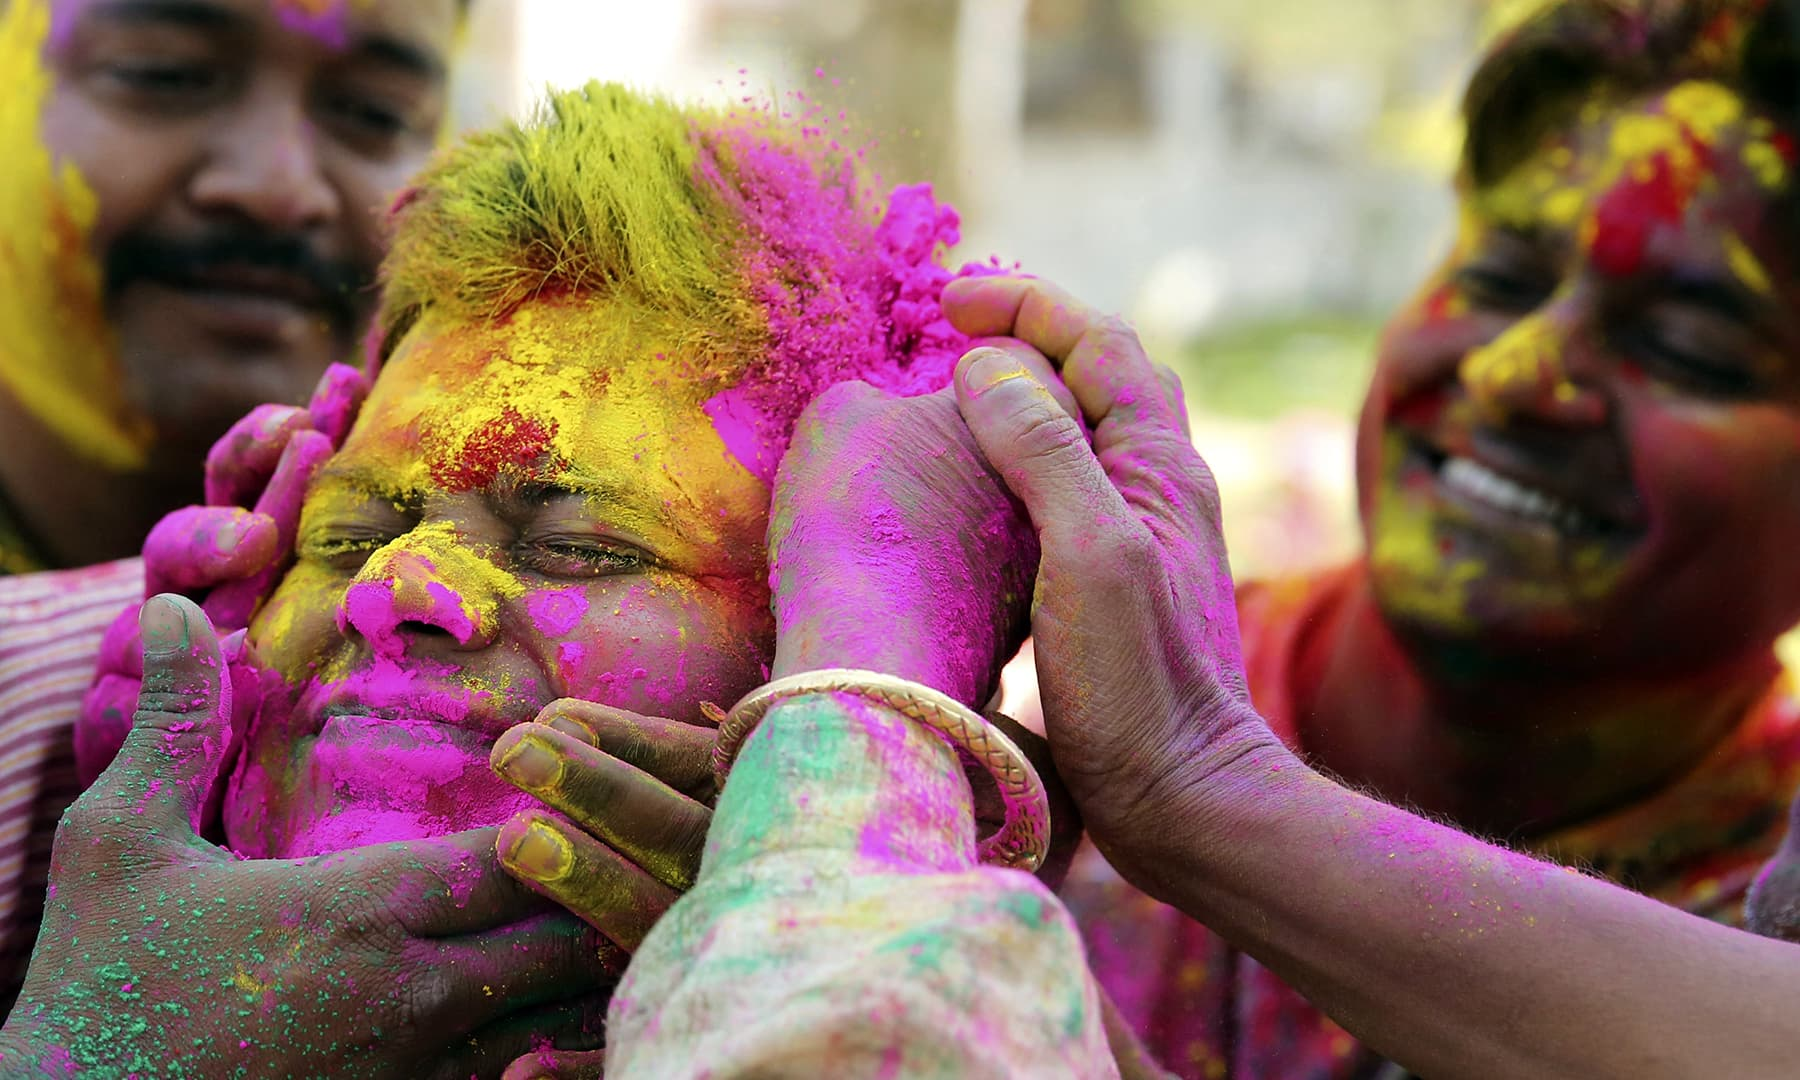 A man has coloured powder smeared on his face during celebrations marking Holi in Allahabad, India, March 20, 2019.  — AP